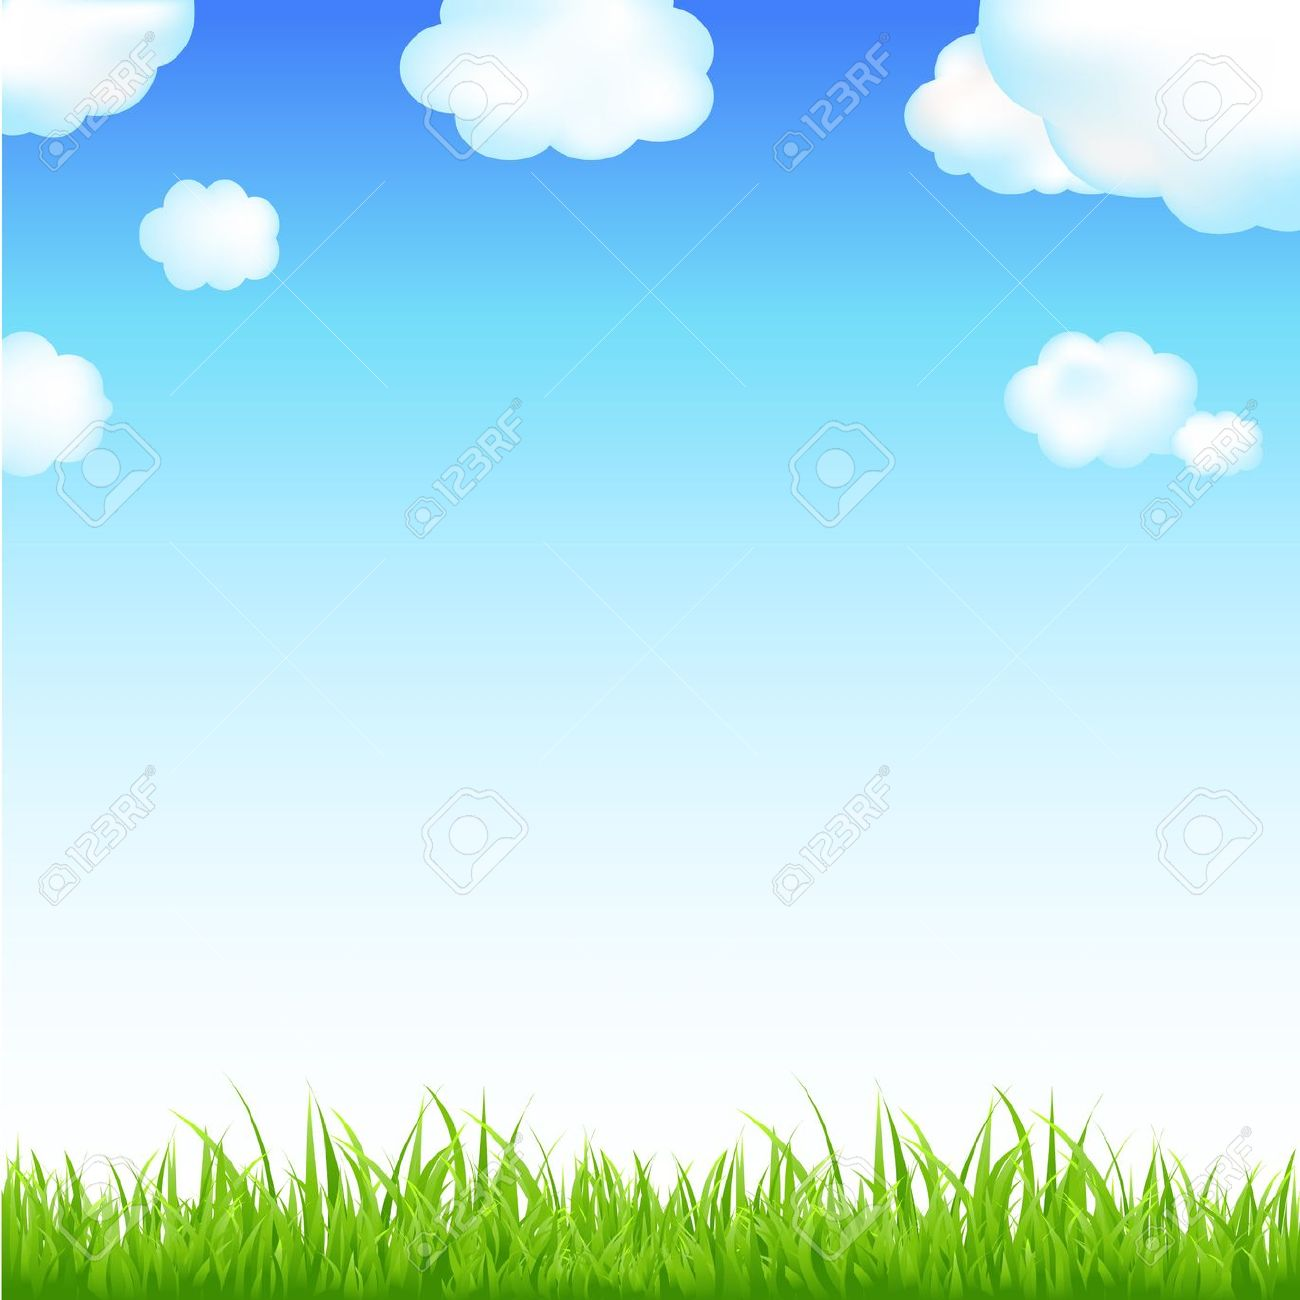 Painting Field Stock Vector Illustration And Royalty Free Painting.